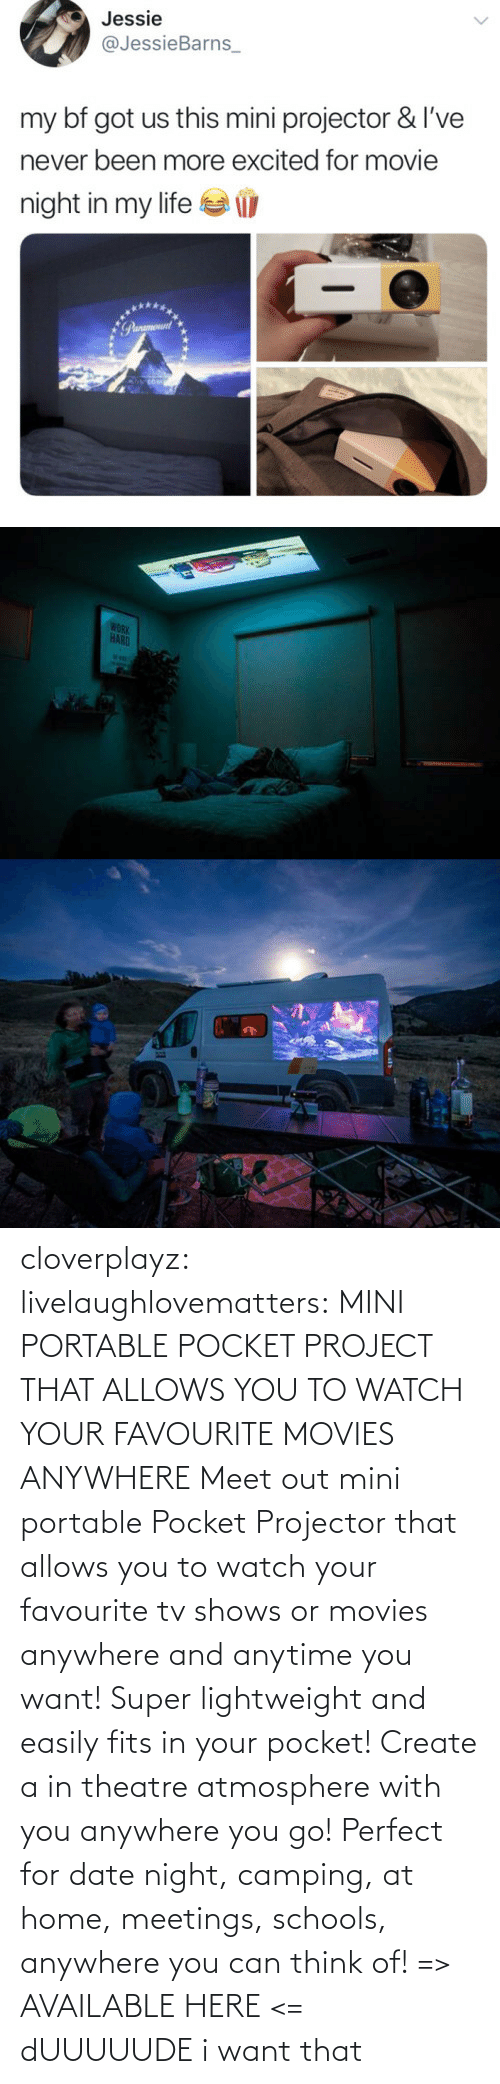 /tv/ : cloverplayz: livelaughlovematters:  MINI PORTABLE POCKET PROJECT THAT ALLOWS YOU TO WATCH YOUR FAVOURITE MOVIES ANYWHERE Meet out mini portable Pocket Projector that allows you to watch your favourite tv shows or movies anywhere and anytime you want! Super lightweight and easily fits in your pocket! Create a in theatre atmosphere with you anywhere you go! Perfect for date night, camping, at home, meetings, schools, anywhere you can think of! => AVAILABLE HERE <=  dUUUUUDE i want that